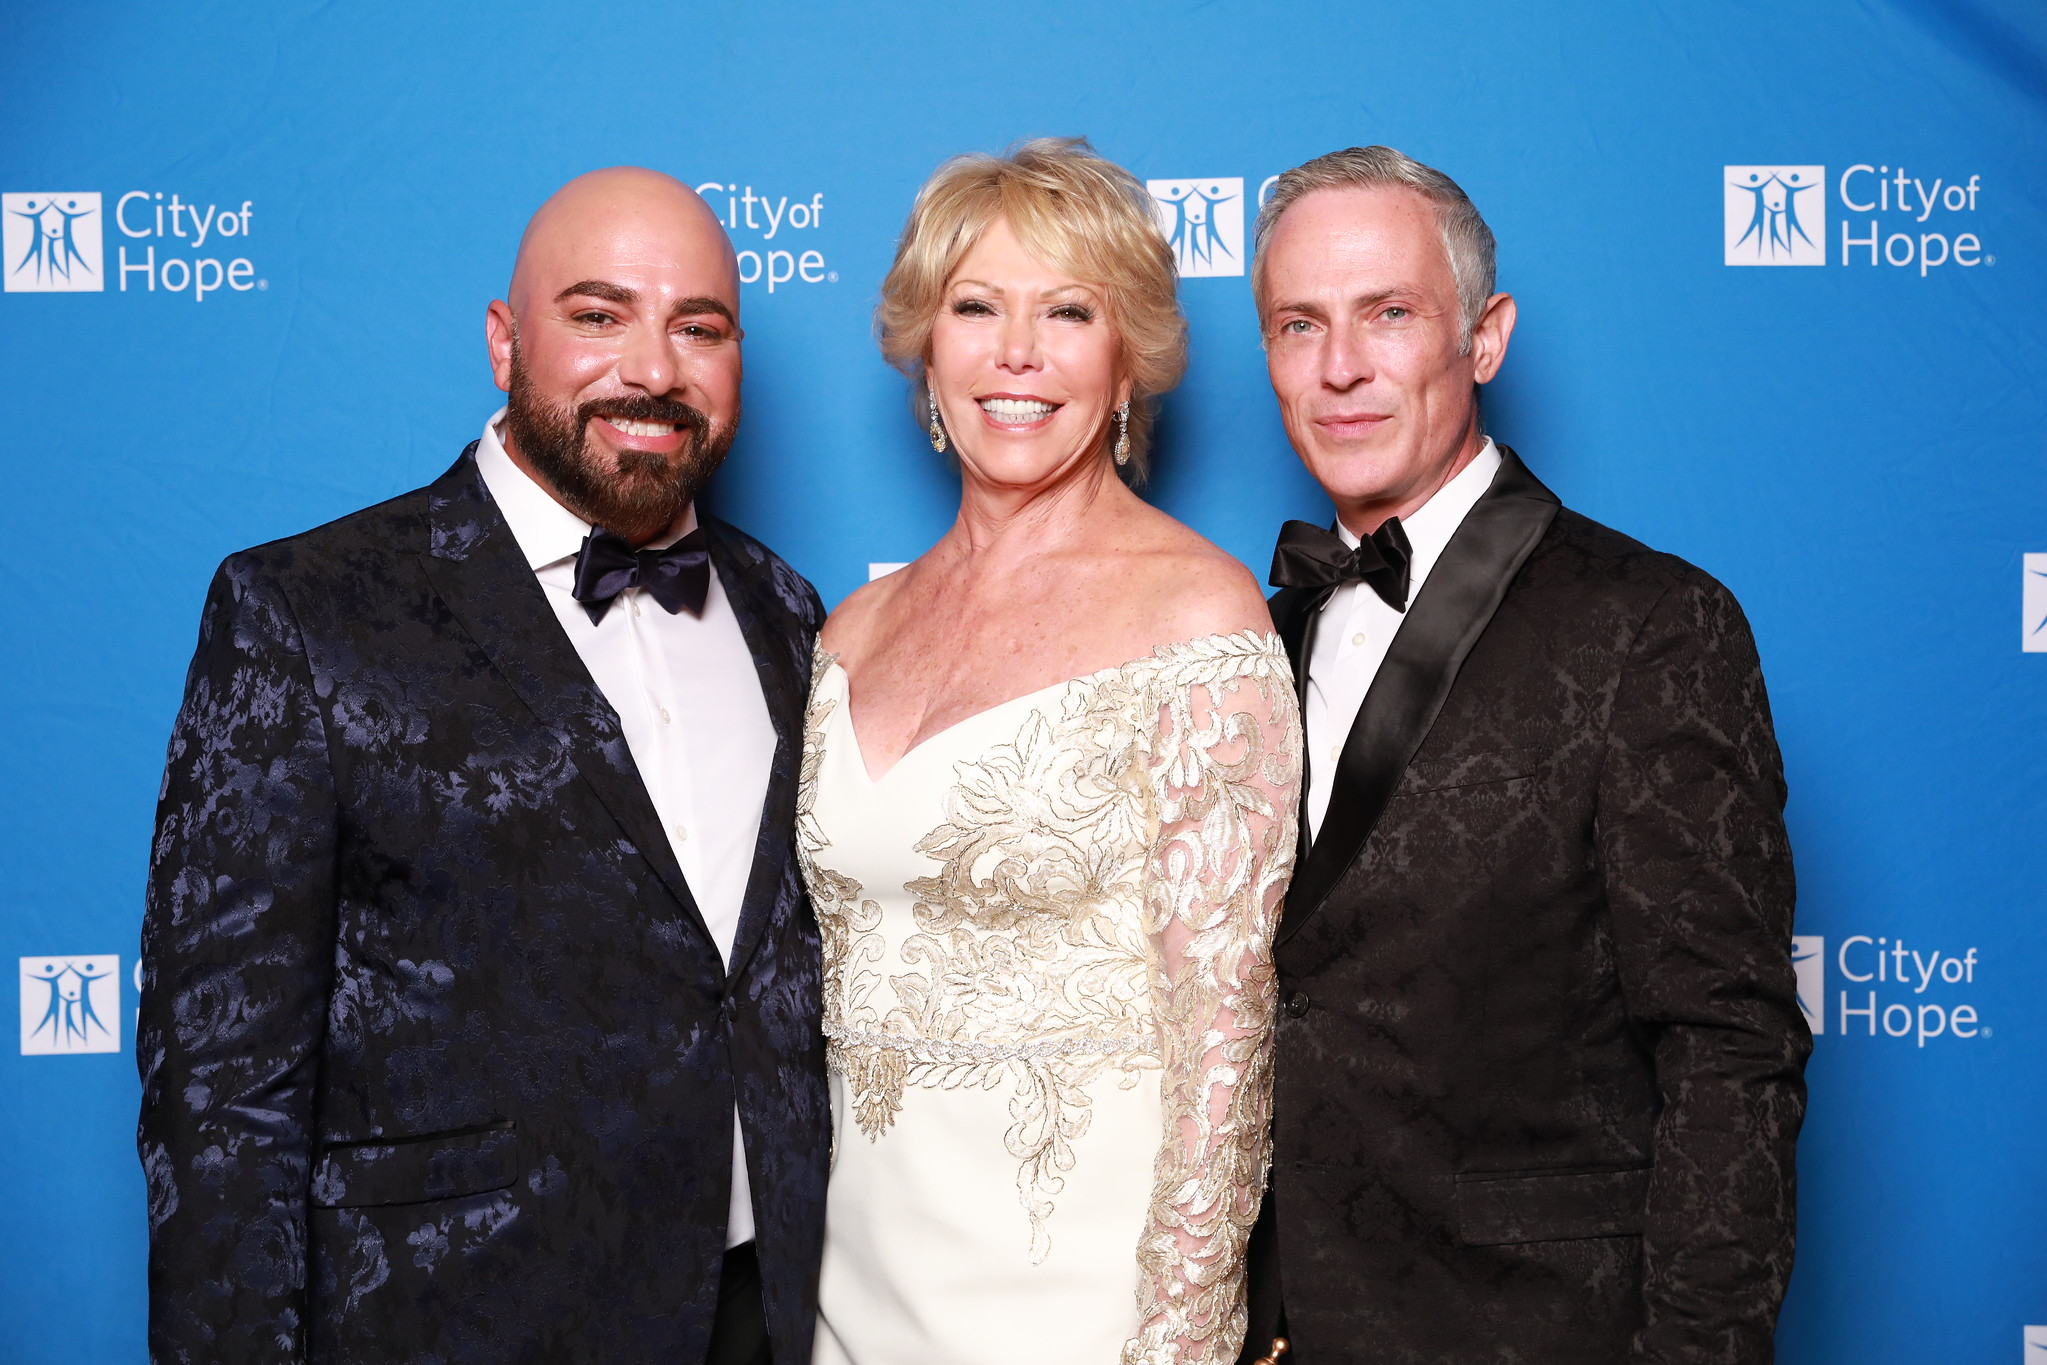 2018 NPSI Spirit of Life Award Gala | City of Hope